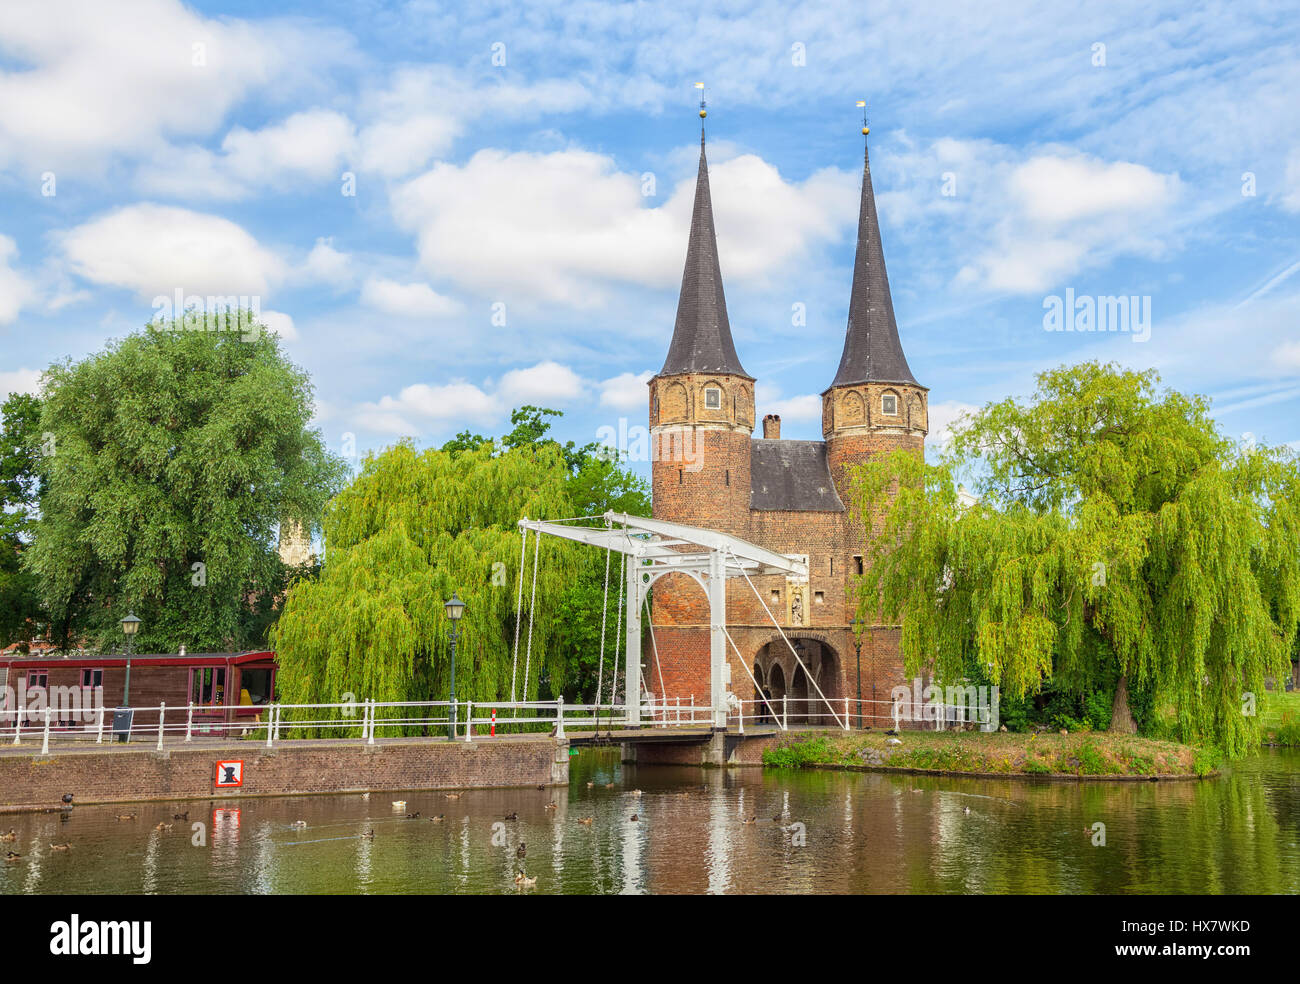 The Eastern Gate (Oostpoort) in Delft, an example of Brick Gothic northern European architecture, Netherlands - Stock Image